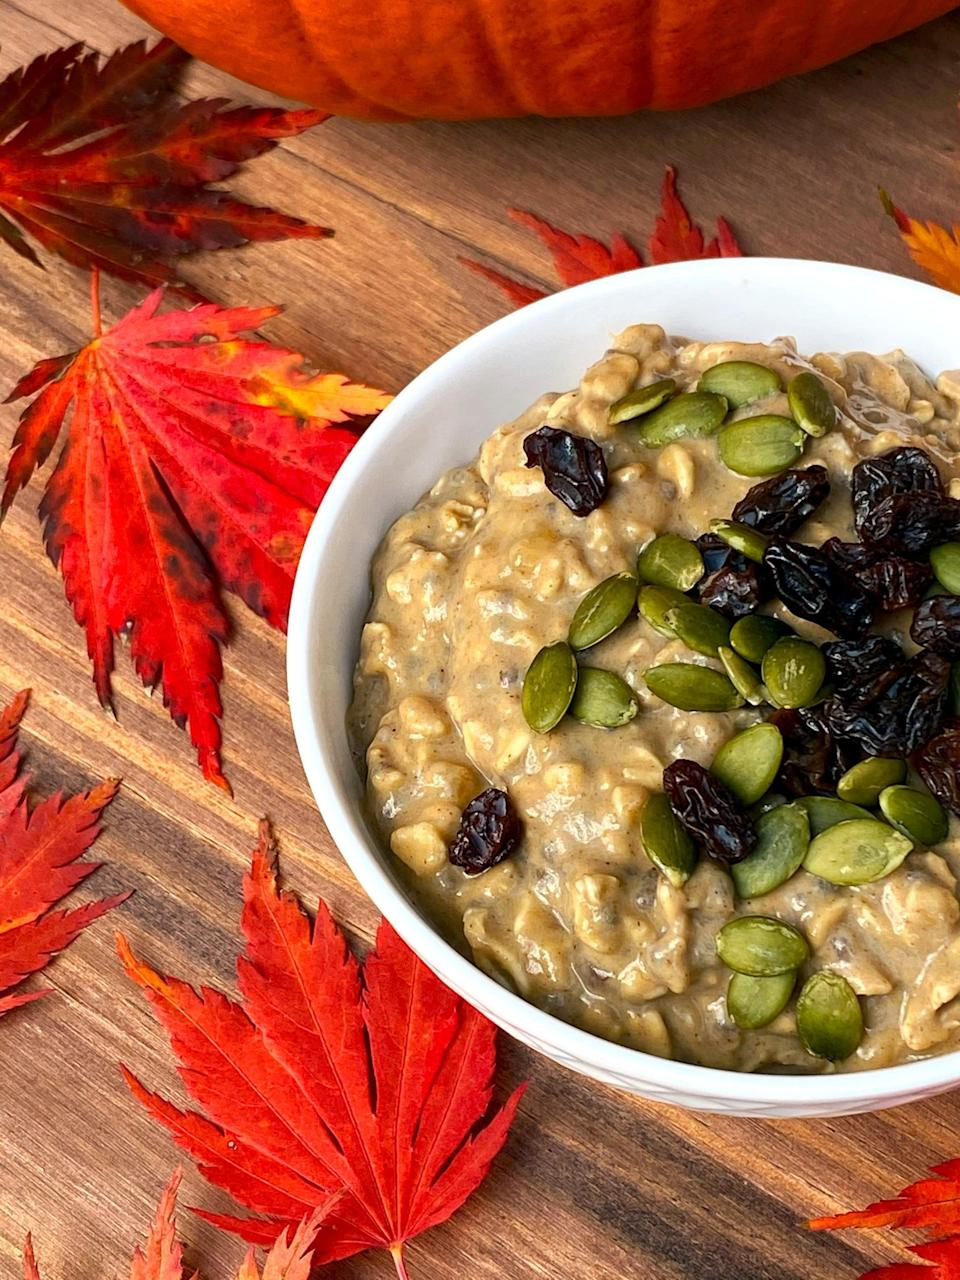 """<p>Besides the typical protein shake or smoothies, I love to add half a scoop into my oatmeal. But you can also use Orgain Pumpkin Spice Protein Powder to make these recipes:</p> <ul> <li><a href=""""https://www.popsugar.com/fitness/vegan-pumpkin-spice-sheet-pan-protein-pancakes-47915980"""" class=""""link rapid-noclick-resp"""" rel=""""nofollow noopener"""" target=""""_blank"""" data-ylk=""""slk:Pumpkin spice sheet pan protein pancakes"""">Pumpkin spice sheet pan protein pancakes</a></li> <li><a href=""""https://www.popsugar.com/fitness/vegan-pumpkin-chocolate-chip-protein-muffins-47873714"""" class=""""link rapid-noclick-resp"""" rel=""""nofollow noopener"""" target=""""_blank"""" data-ylk=""""slk:Pumpkin spice protein muffins"""">Pumpkin spice protein muffins</a></li> <li><a href=""""https://www.popsugar.com/fitness/vegan-chocolate-marbled-pumpkin-protein-bread-47927032"""" class=""""link rapid-noclick-resp"""" rel=""""nofollow noopener"""" target=""""_blank"""" data-ylk=""""slk:Vegan high-protein chocolate marble pumpkin bread"""">Vegan high-protein chocolate marble pumpkin bread</a></li> <li><a href=""""https://www.popsugar.com/fitness/vegan-whole-wheat-protein-waffles-47373138"""" class=""""link rapid-noclick-resp"""" rel=""""nofollow noopener"""" target=""""_blank"""" data-ylk=""""slk:Whole wheat protein waffles"""">Whole wheat protein waffles</a></li> <li><a href=""""https://www.popsugar.com/fitness/high-protein-peanut-butter-banana-baked-oatmeal-47939778"""" class=""""link rapid-noclick-resp"""" rel=""""nofollow noopener"""" target=""""_blank"""" data-ylk=""""slk:Peanut butter banana baked oatmeal"""">Peanut butter banana baked oatmeal</a></li> <li><a href=""""https://www.popsugar.com/fitness/Chocolate-Chip-Pumpkin-Protein-Balls-35959228"""" class=""""link rapid-noclick-resp"""" rel=""""nofollow noopener"""" target=""""_blank"""" data-ylk=""""slk:Chocolate chip pumpkin pie protein balls"""">Chocolate chip pumpkin pie protein balls</a></li> <li><a href=""""https://www.popsugar.com/fitness/Sugar-Free-Oatmeal-Cookies-42629183"""" class=""""link rapid-noclick-resp"""" rel=""""nofollow noopener"""" target=""""_blank"""" data-ylk=""""slk:Banana oat protein cookies"""">"""